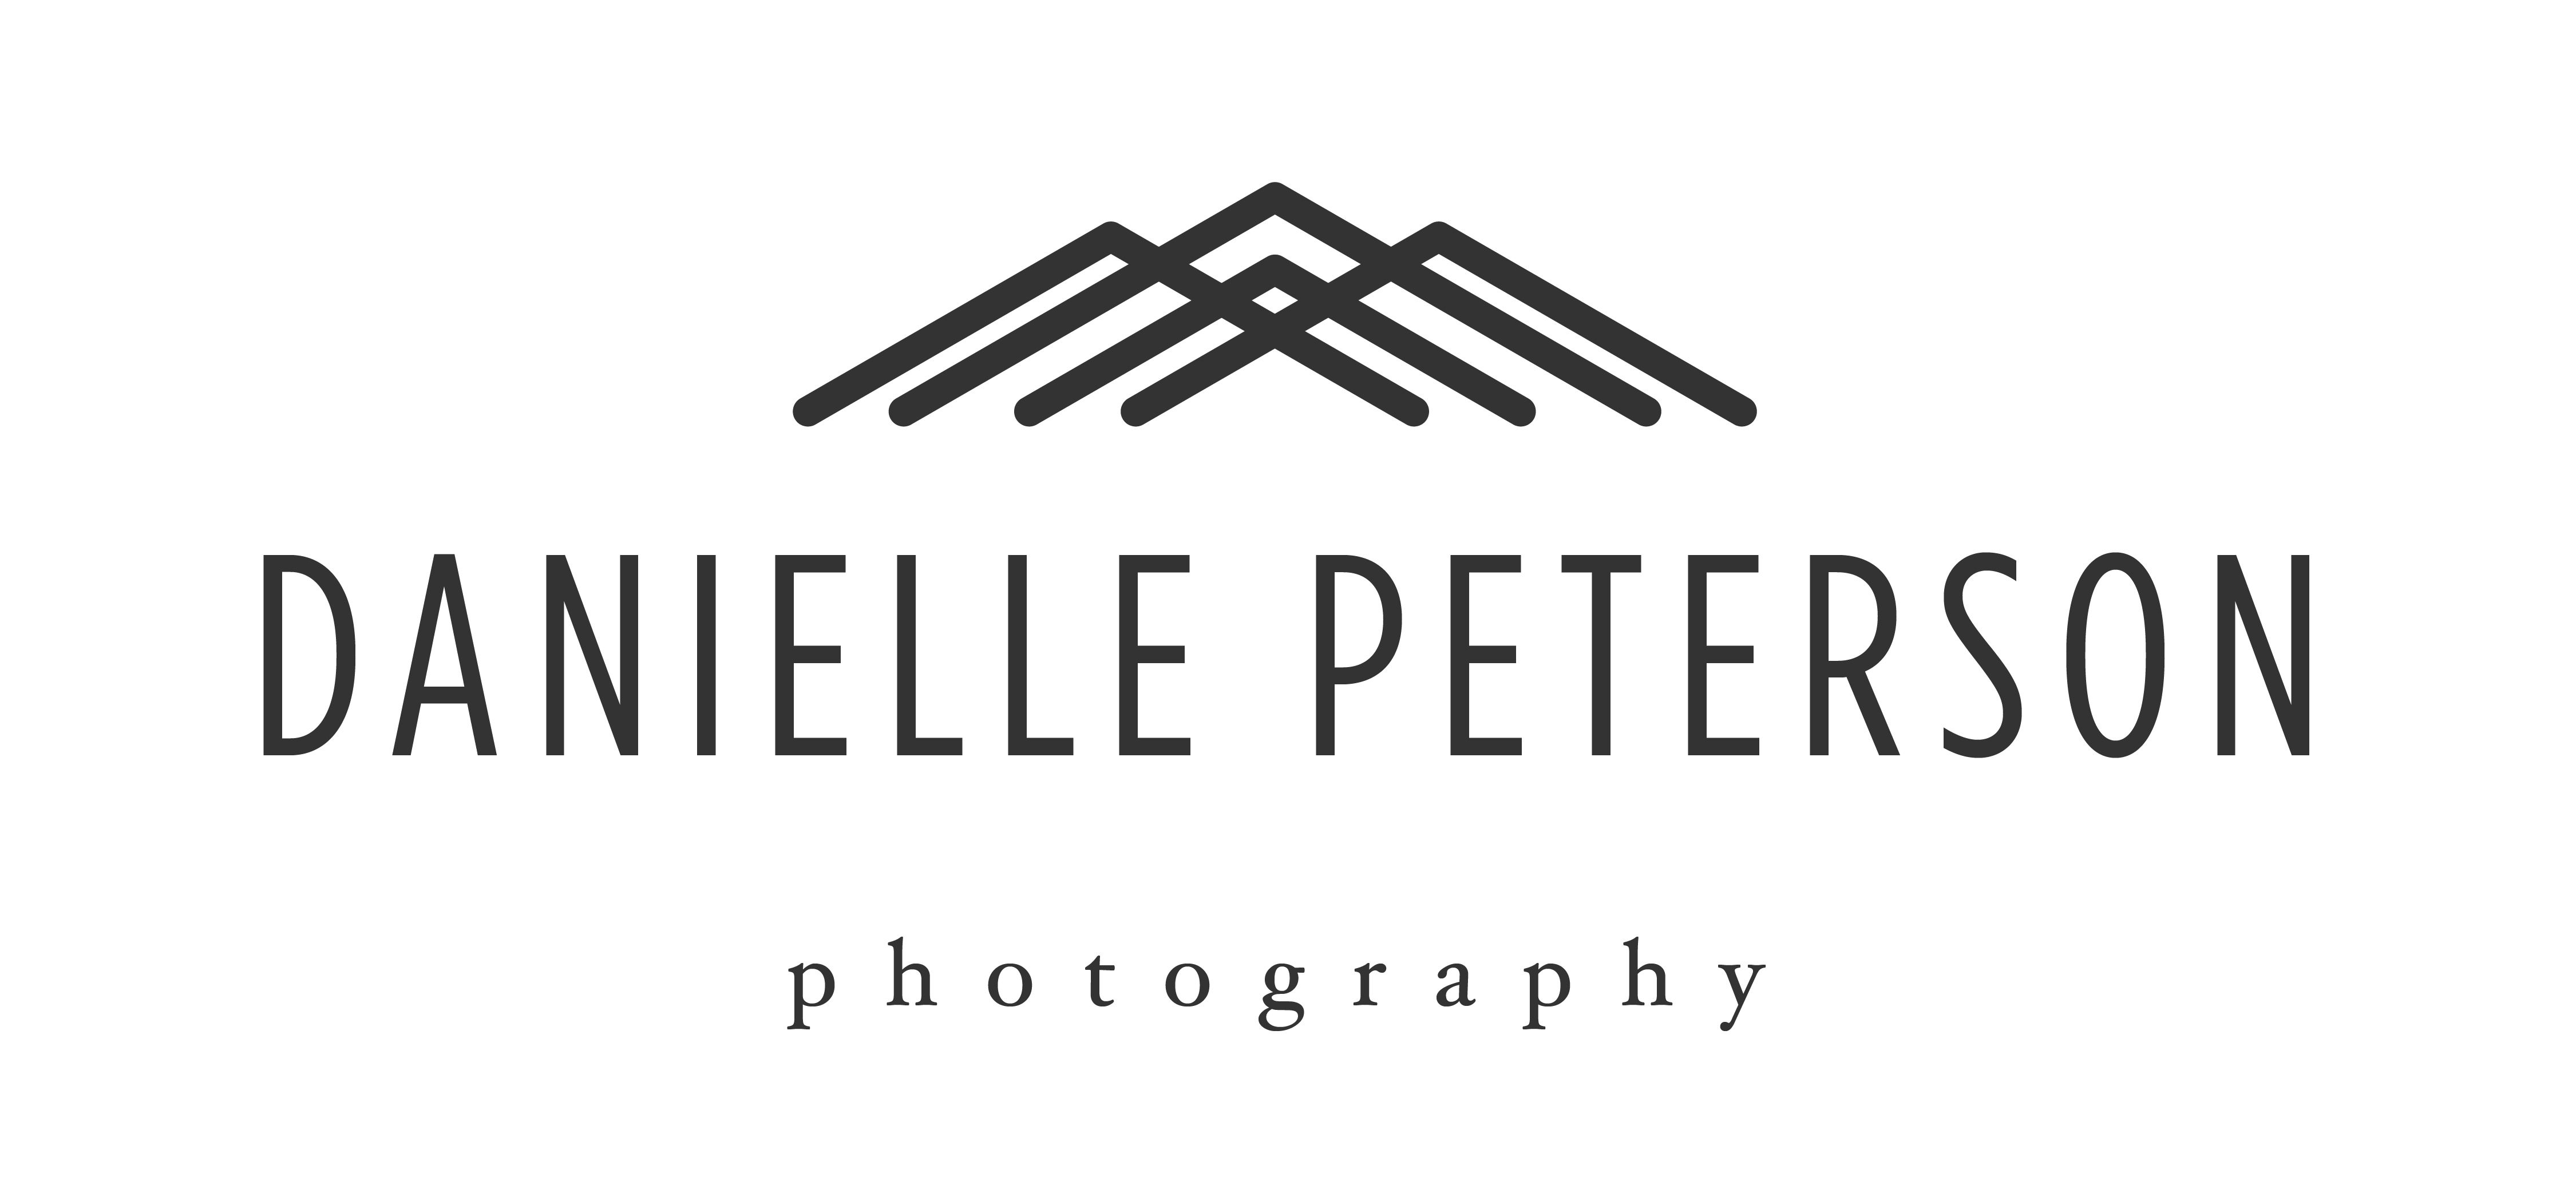 Danielle Peterson Photography